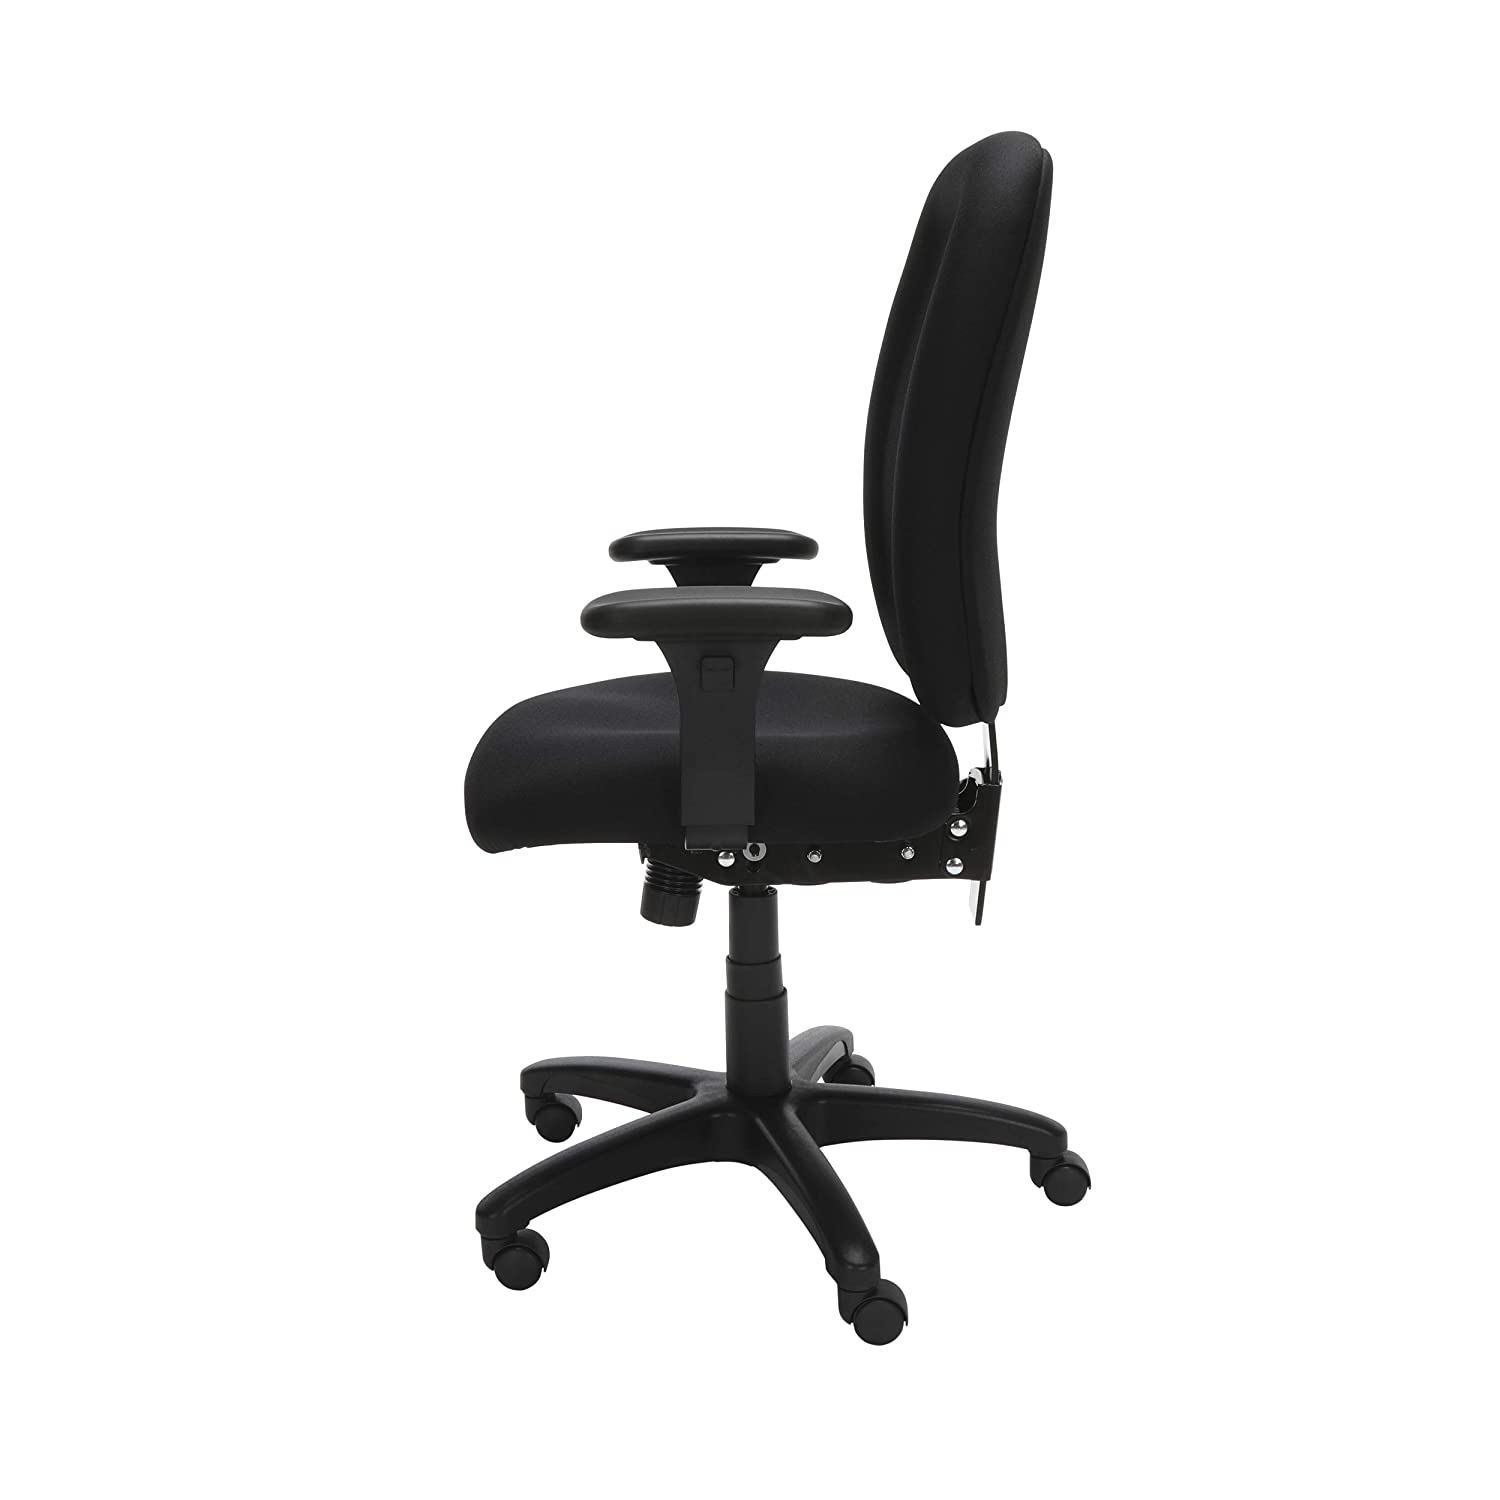 OFM Ergonomic Upholstered Multi-Adjustable ComfySeat Task Chair with Arms Navy 125-804